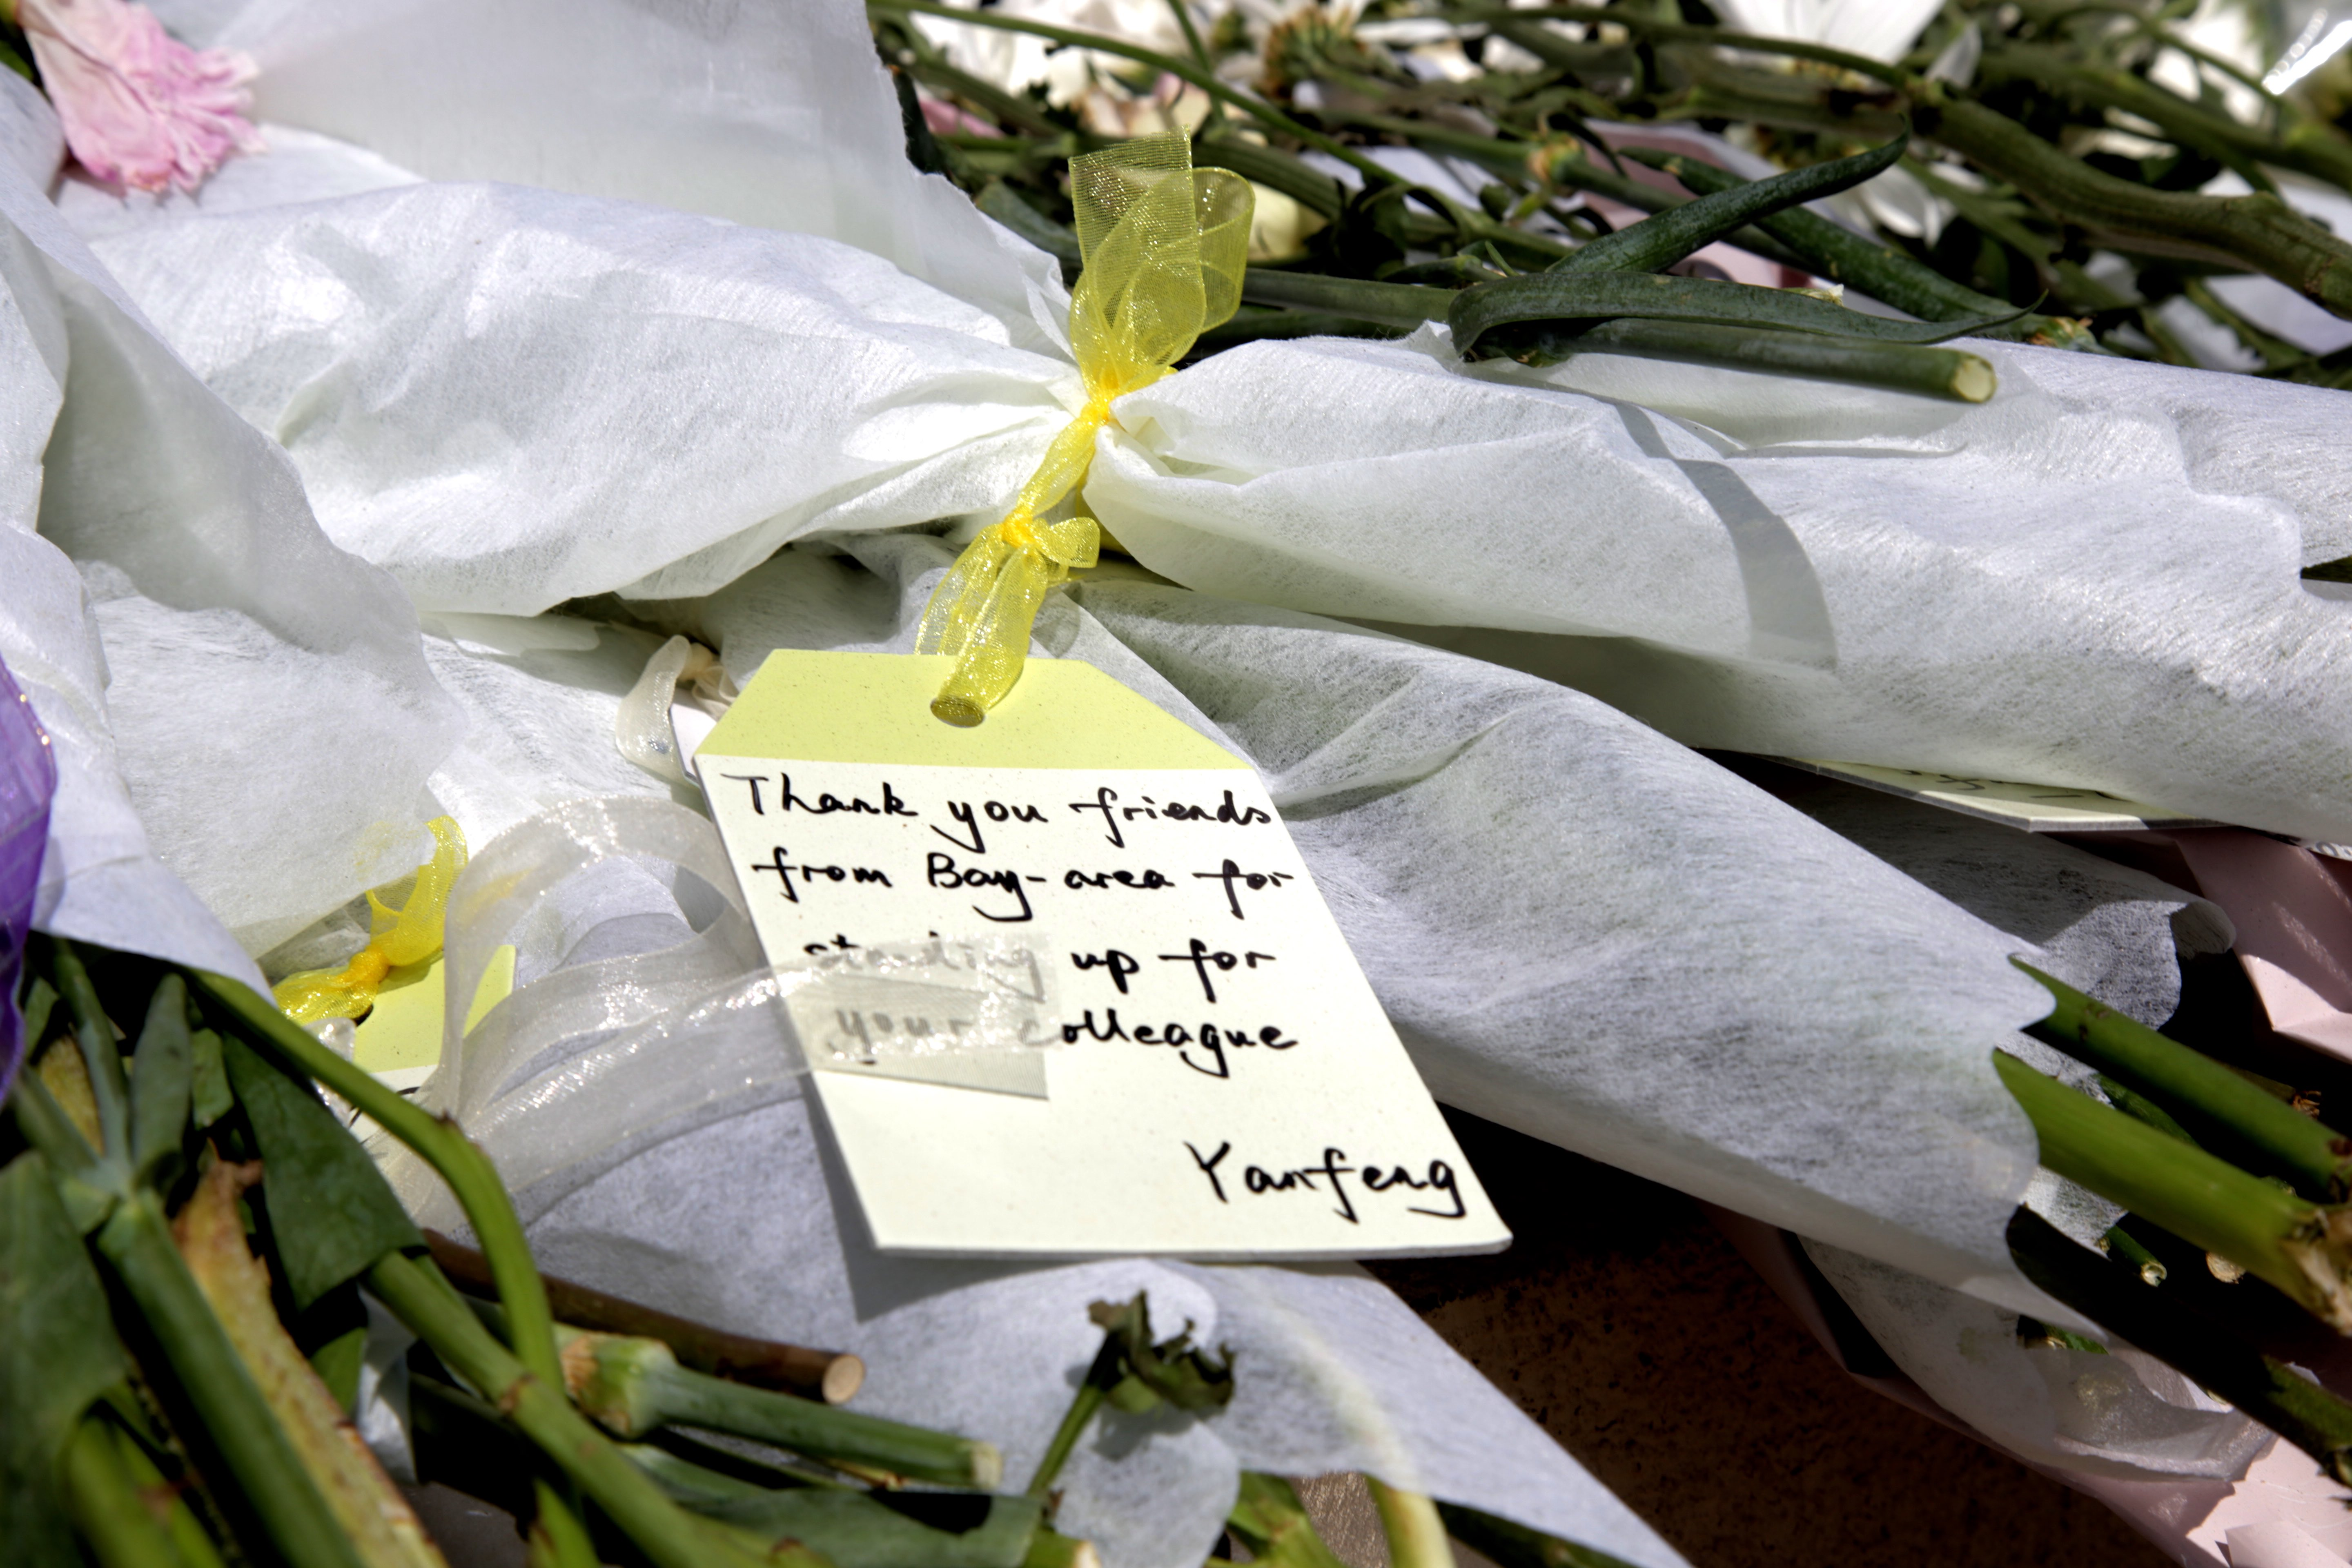 """Flowers are brought to the scene on Thursday September 26, 2019 by protestors who express their condolences and honor the passing of Qin Chen. One of the cards, written by a protestor named Yanfeng, says, """"Thank you friends from Bay Area for standing up for your colleague.""""  (Qian Chen/Peninsula Press)"""